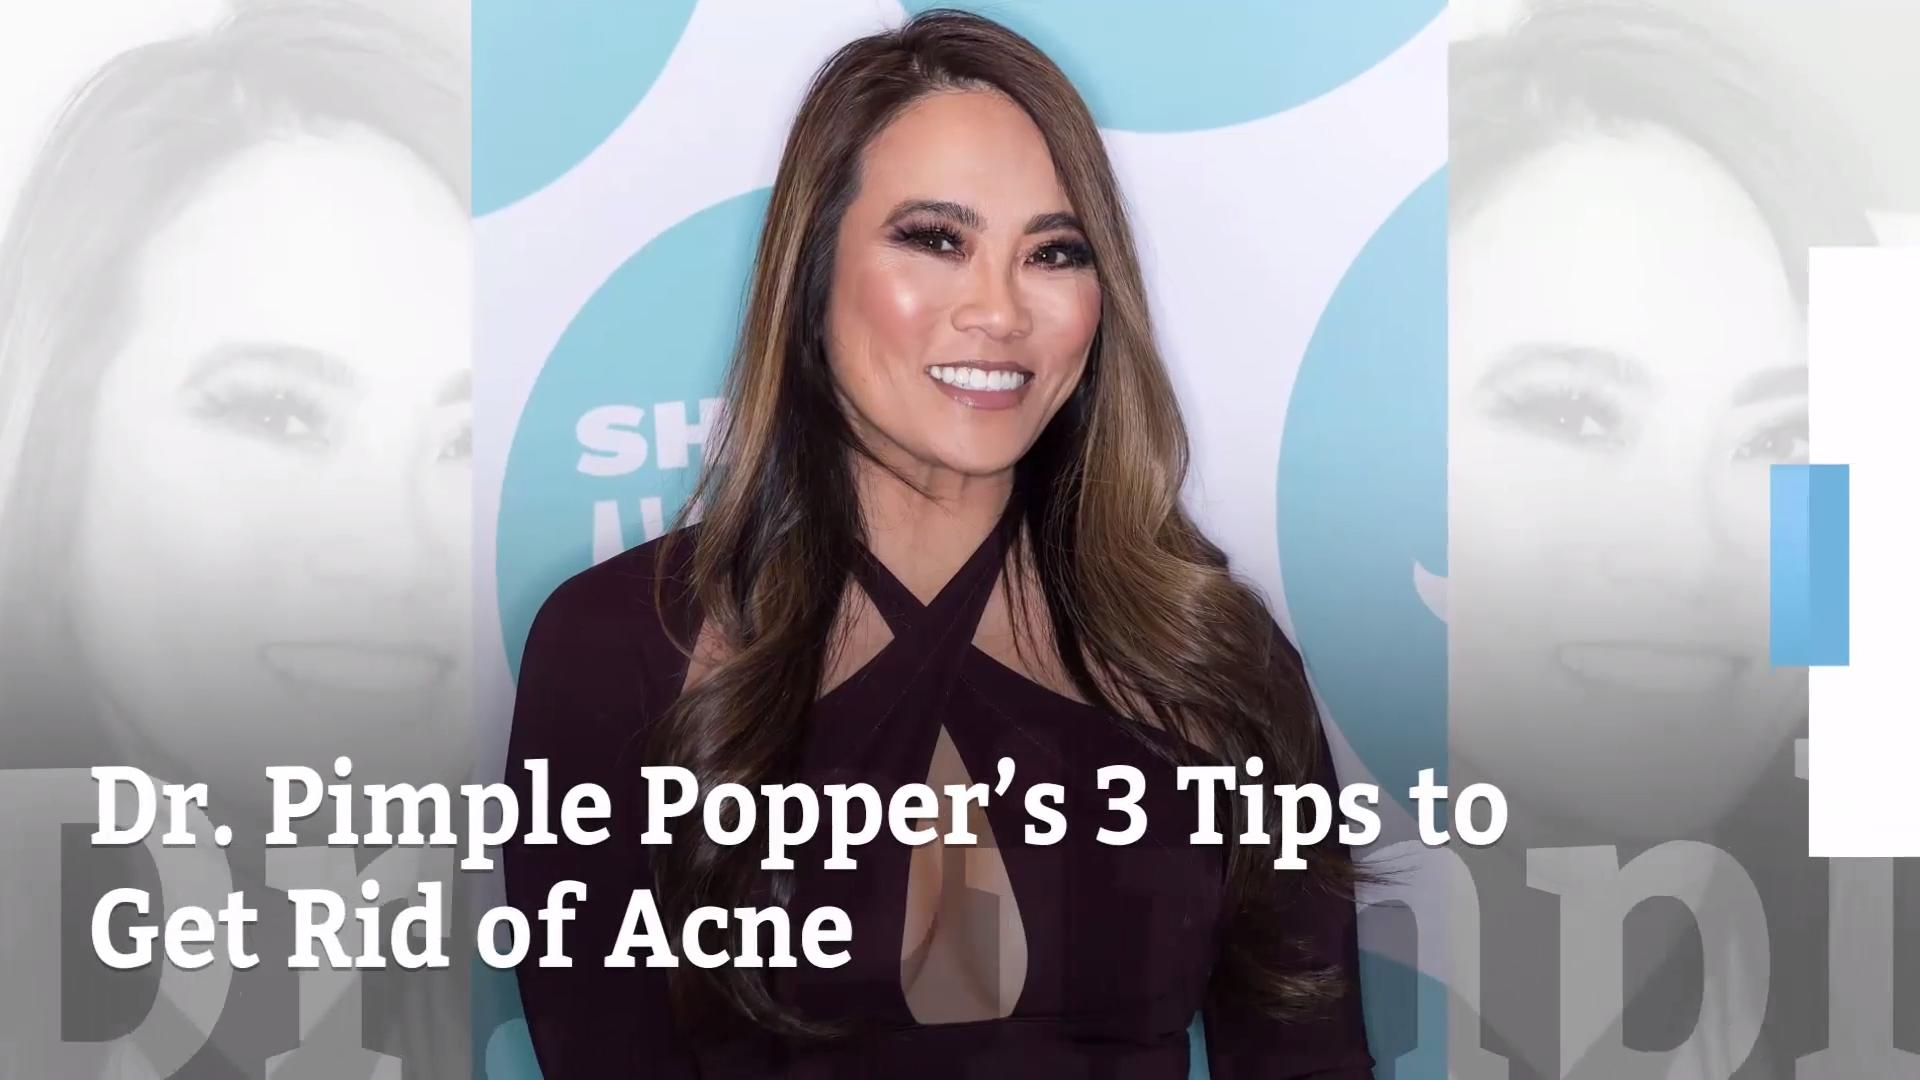 Dr. Pimple Popper's tips for clear skin